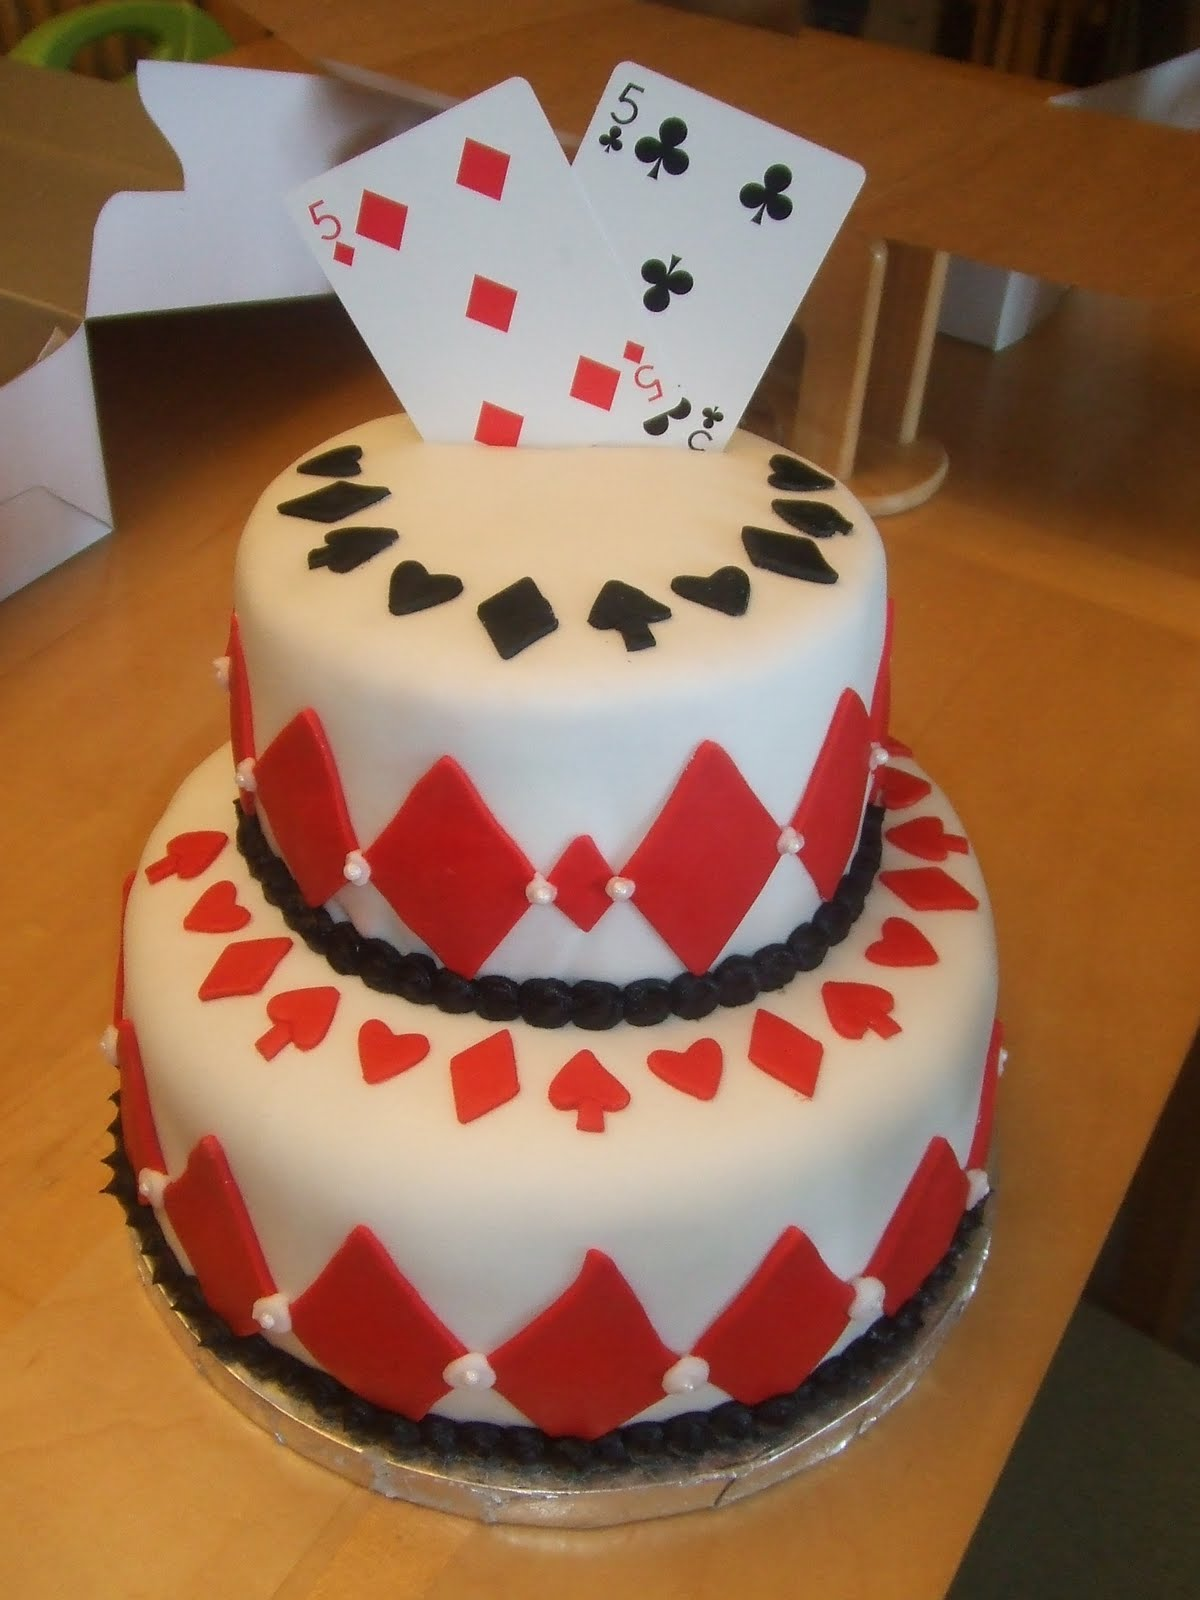 Birthday Cake Images Card : poker-cards-casino-theme-cakes-cupcakes-mumbai-12 - Cakes ...